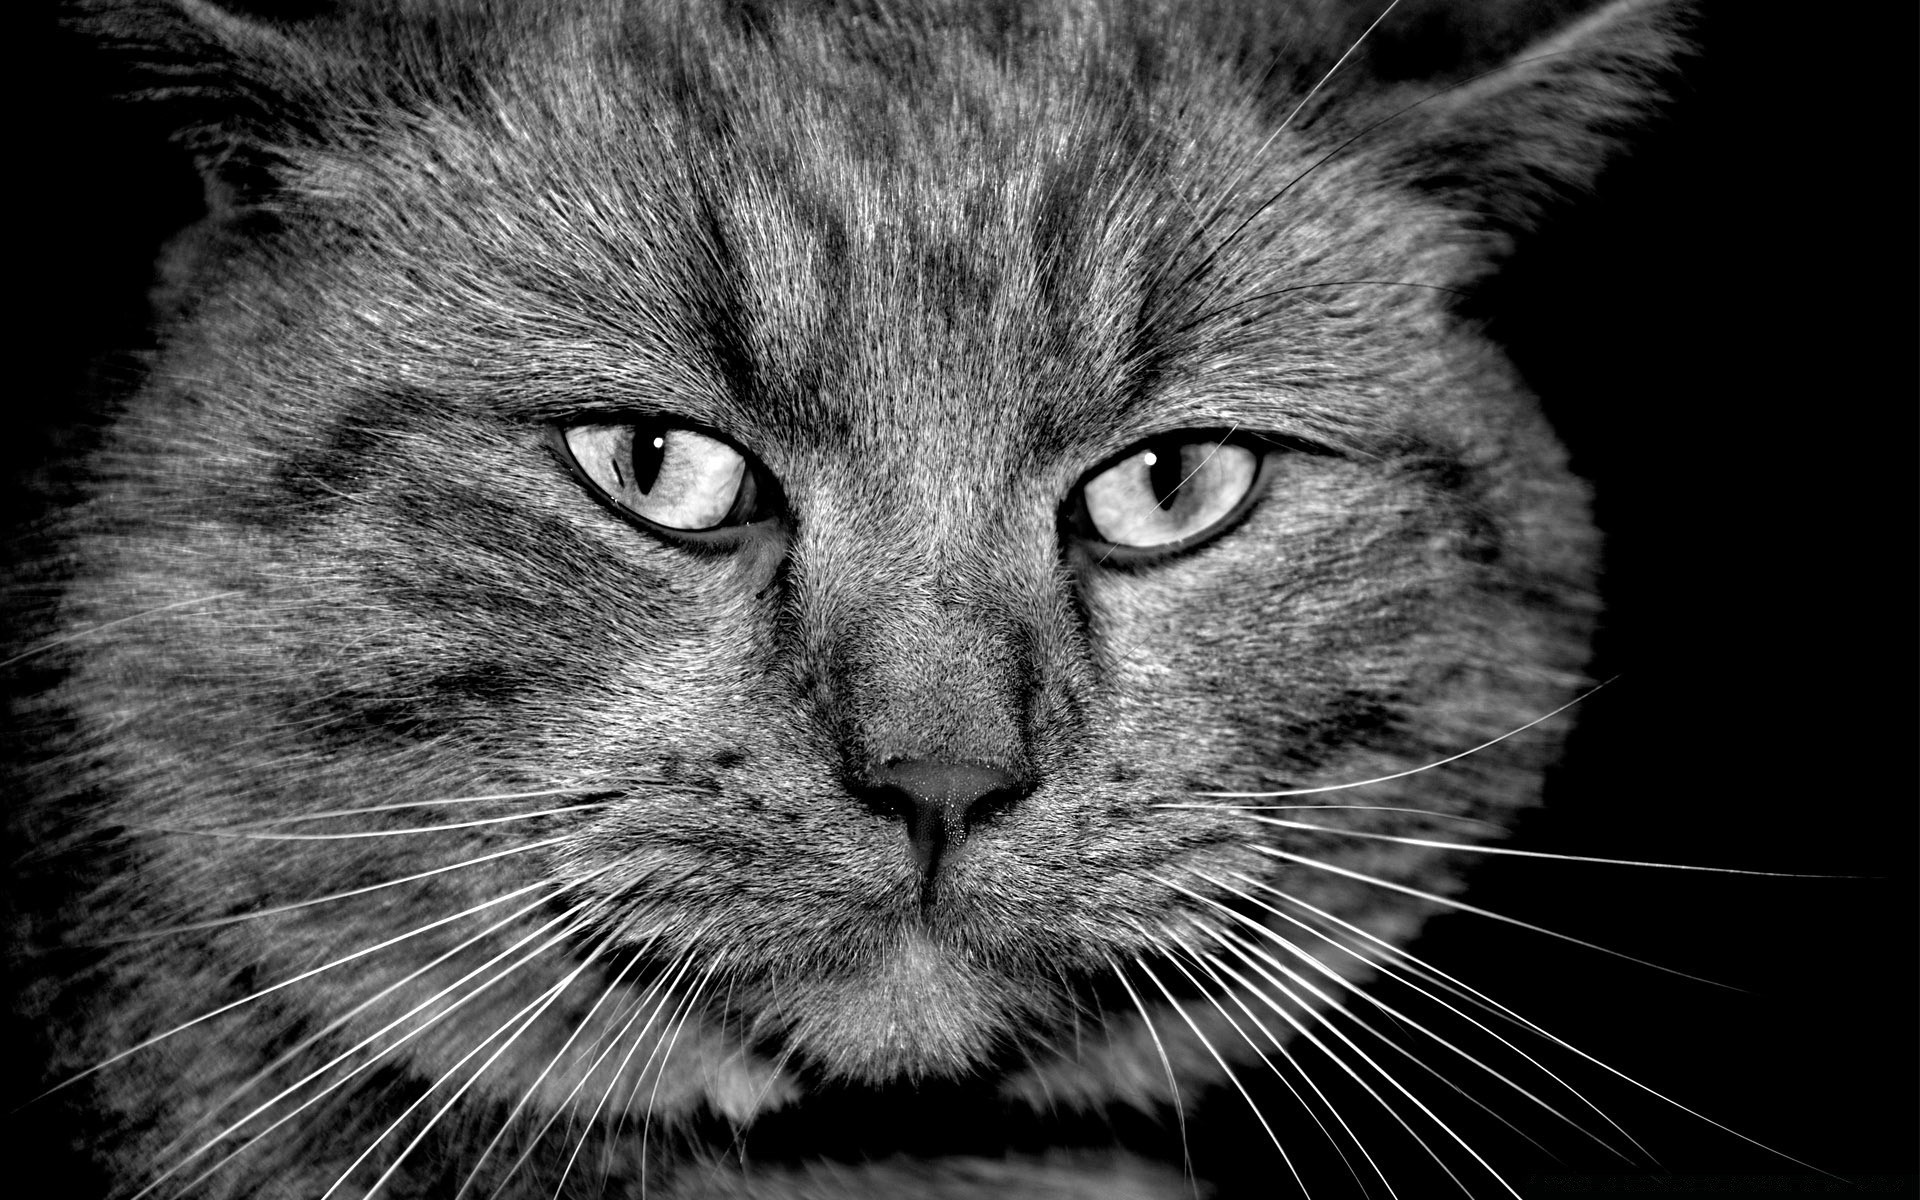 black and white cat portrait pet cute mammal animal fur kitten downy domestic eye head hair grey looking